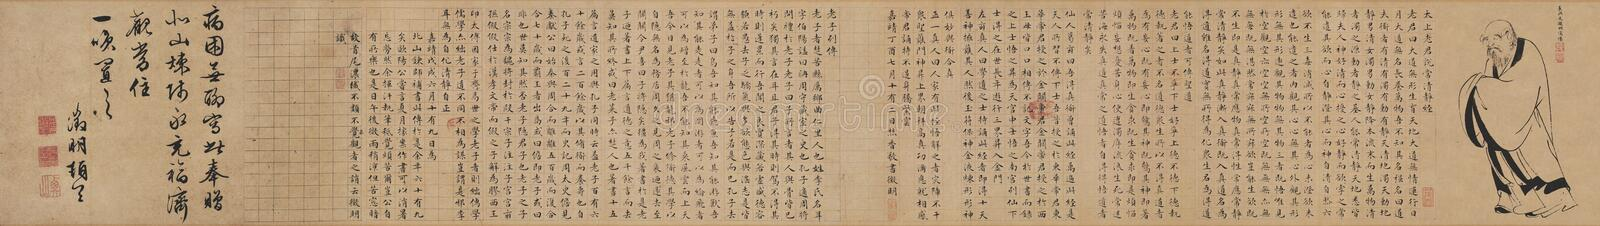 Lao Zi collected biographie collected biographie stock images